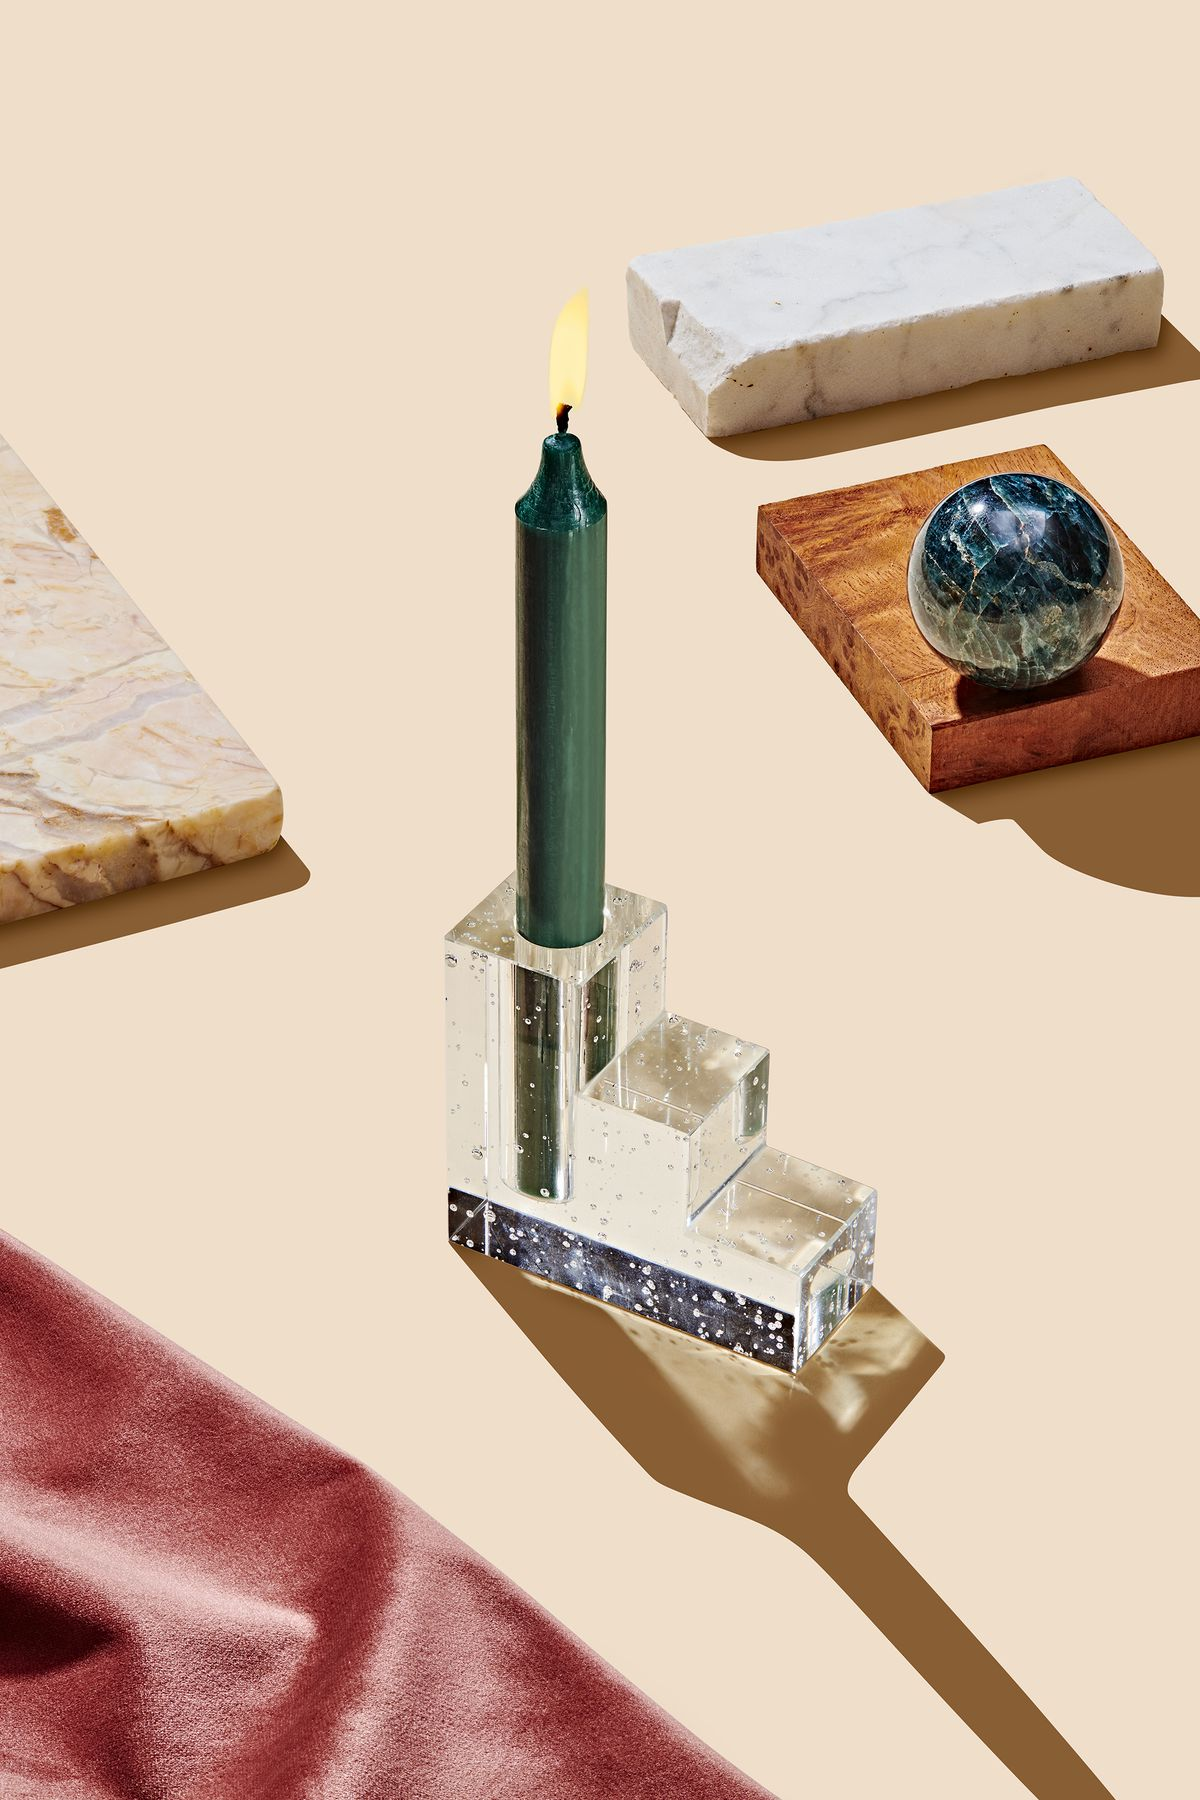 A glass candleholder holds a dark green lit candle. The candleholder has a terraced design with small bubbles. This is part of the Curbed Holiday Gift Guide 2019. The candleholder is surrounded by various design objects on a flat surface.